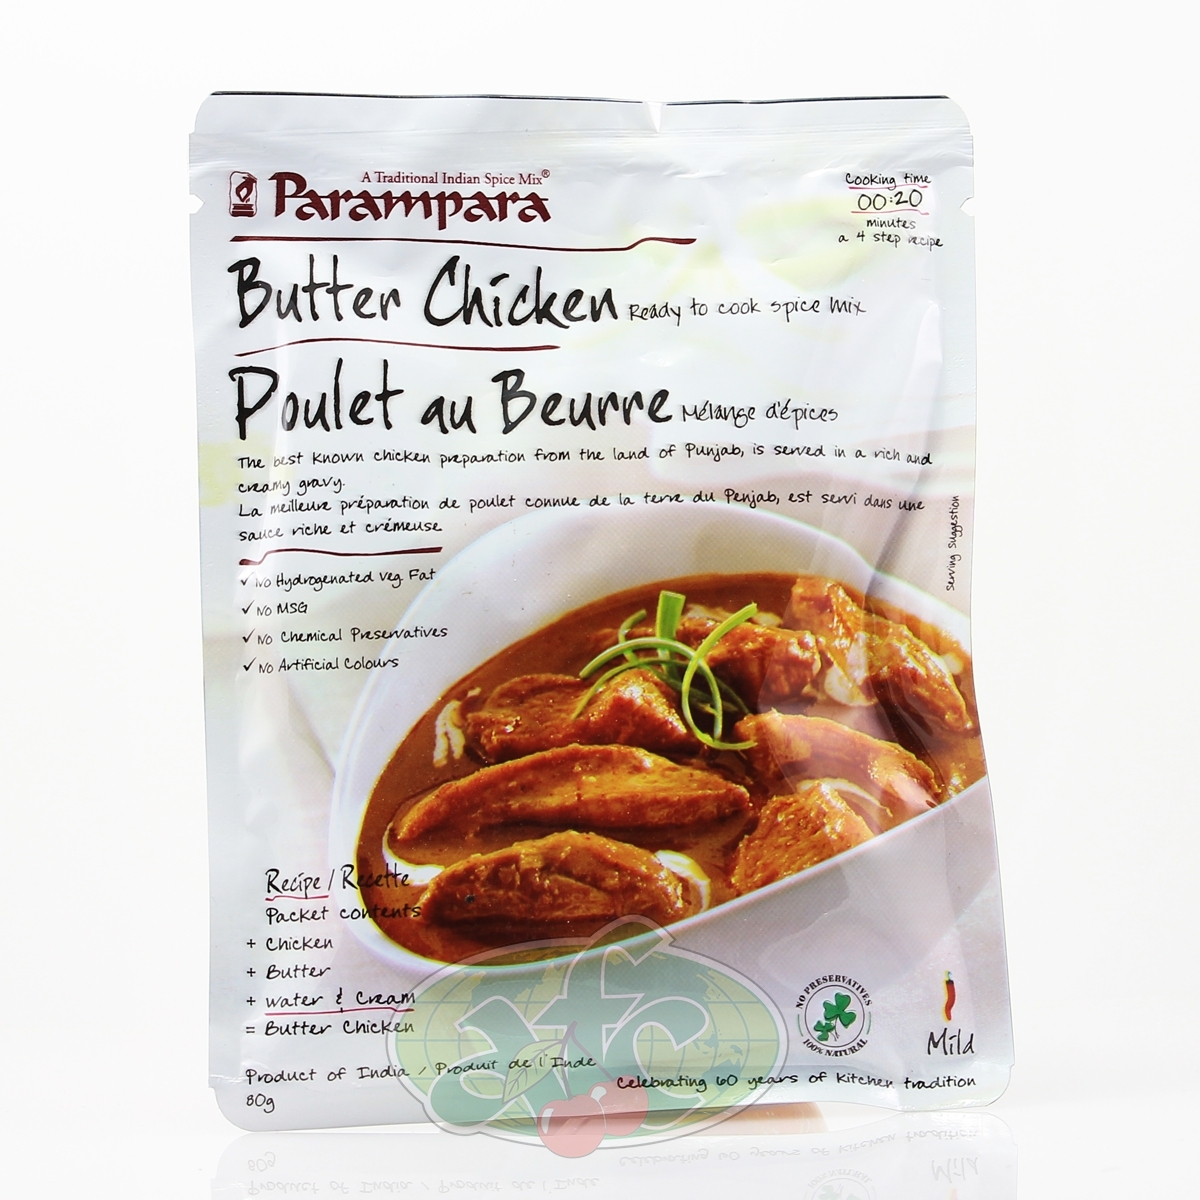 Parampara Mix Butter Chicken